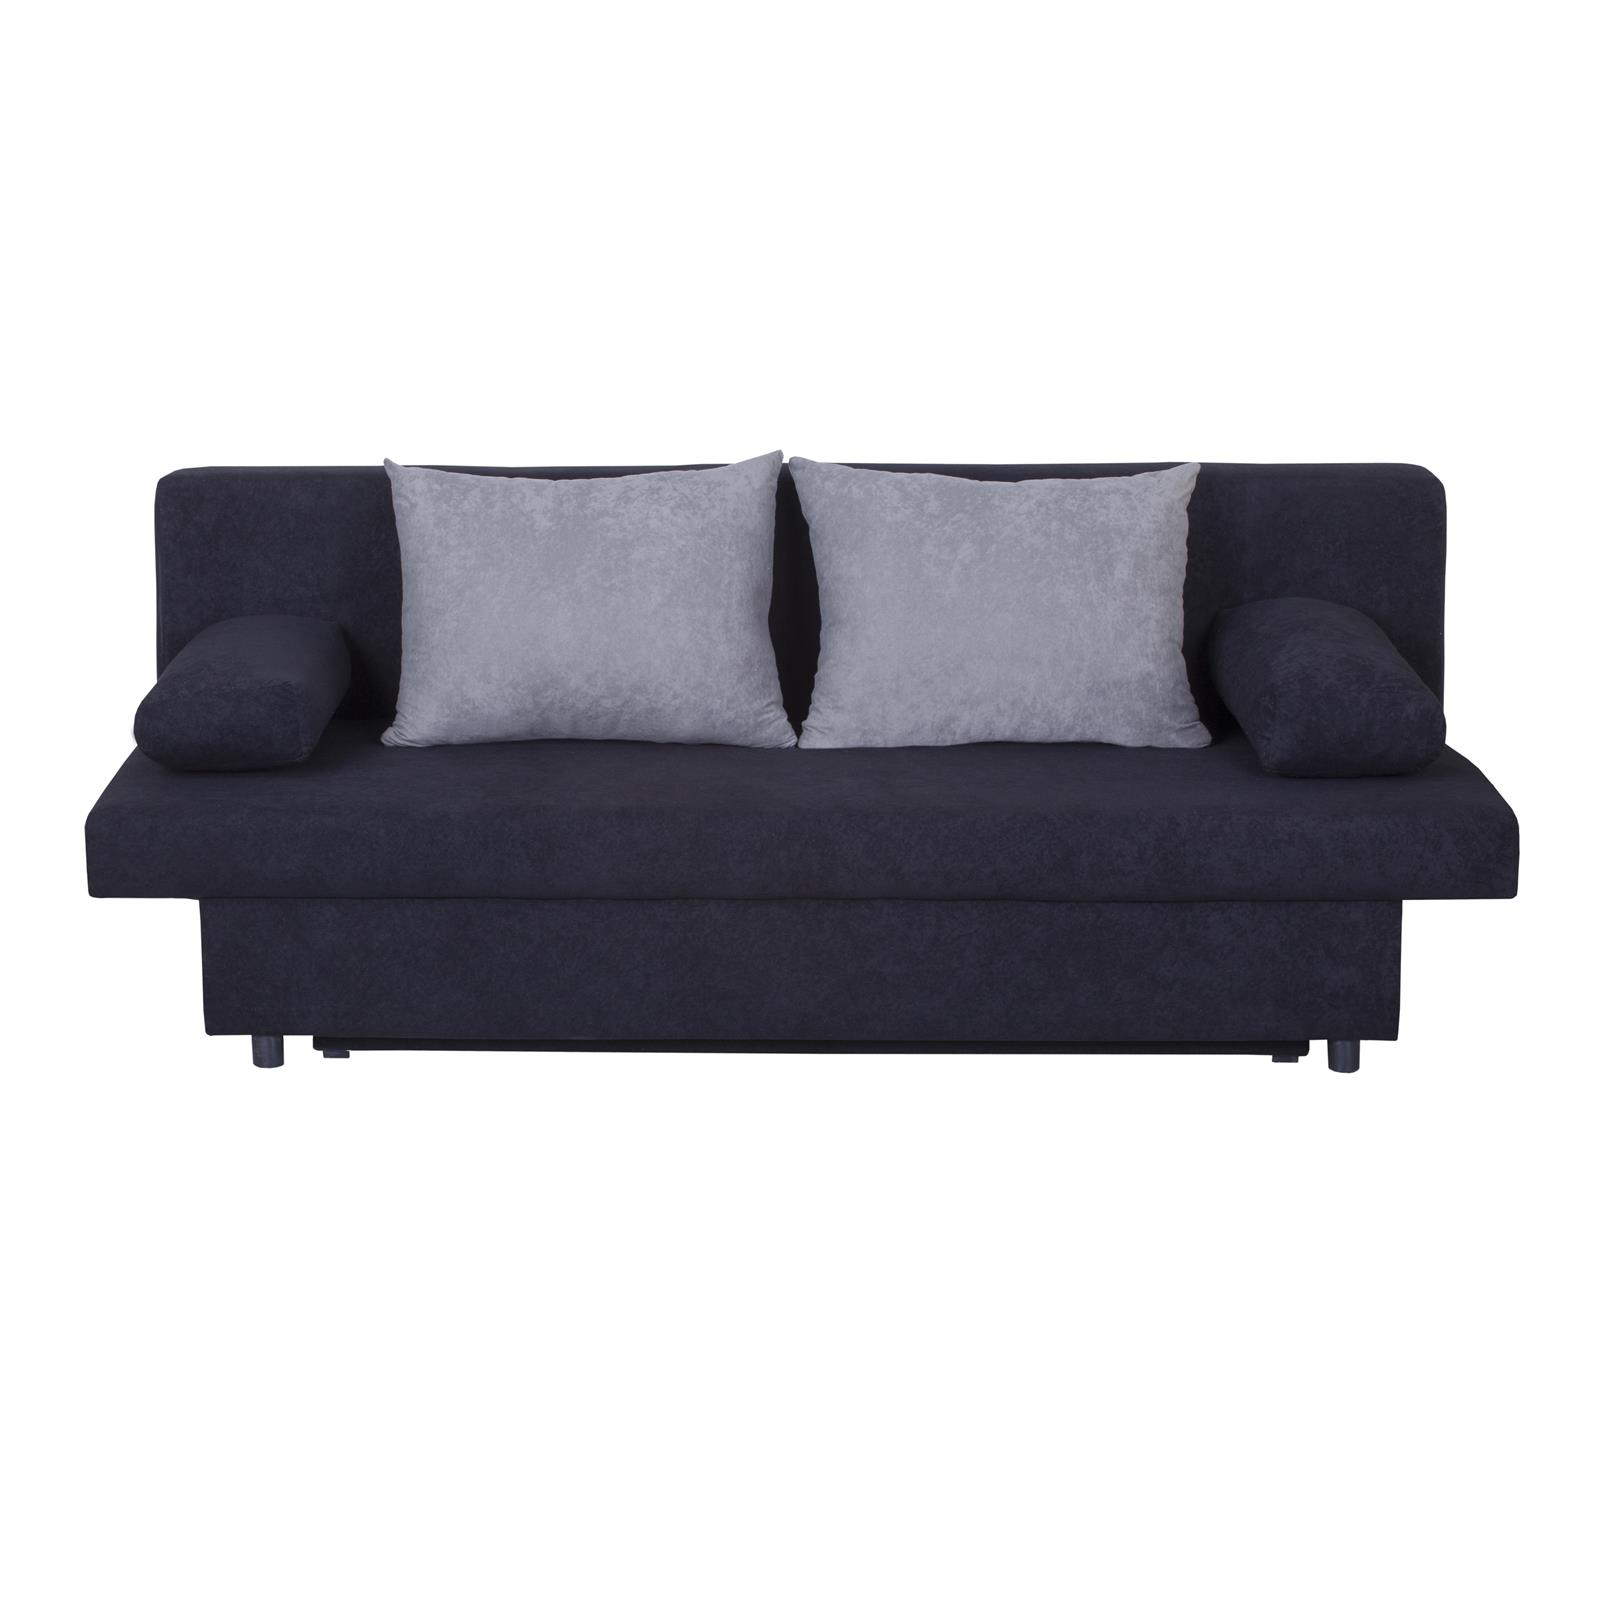 schlafsofa schlafcouch 3 sitzer sofa mit bettkasten in verschieden. Black Bedroom Furniture Sets. Home Design Ideas